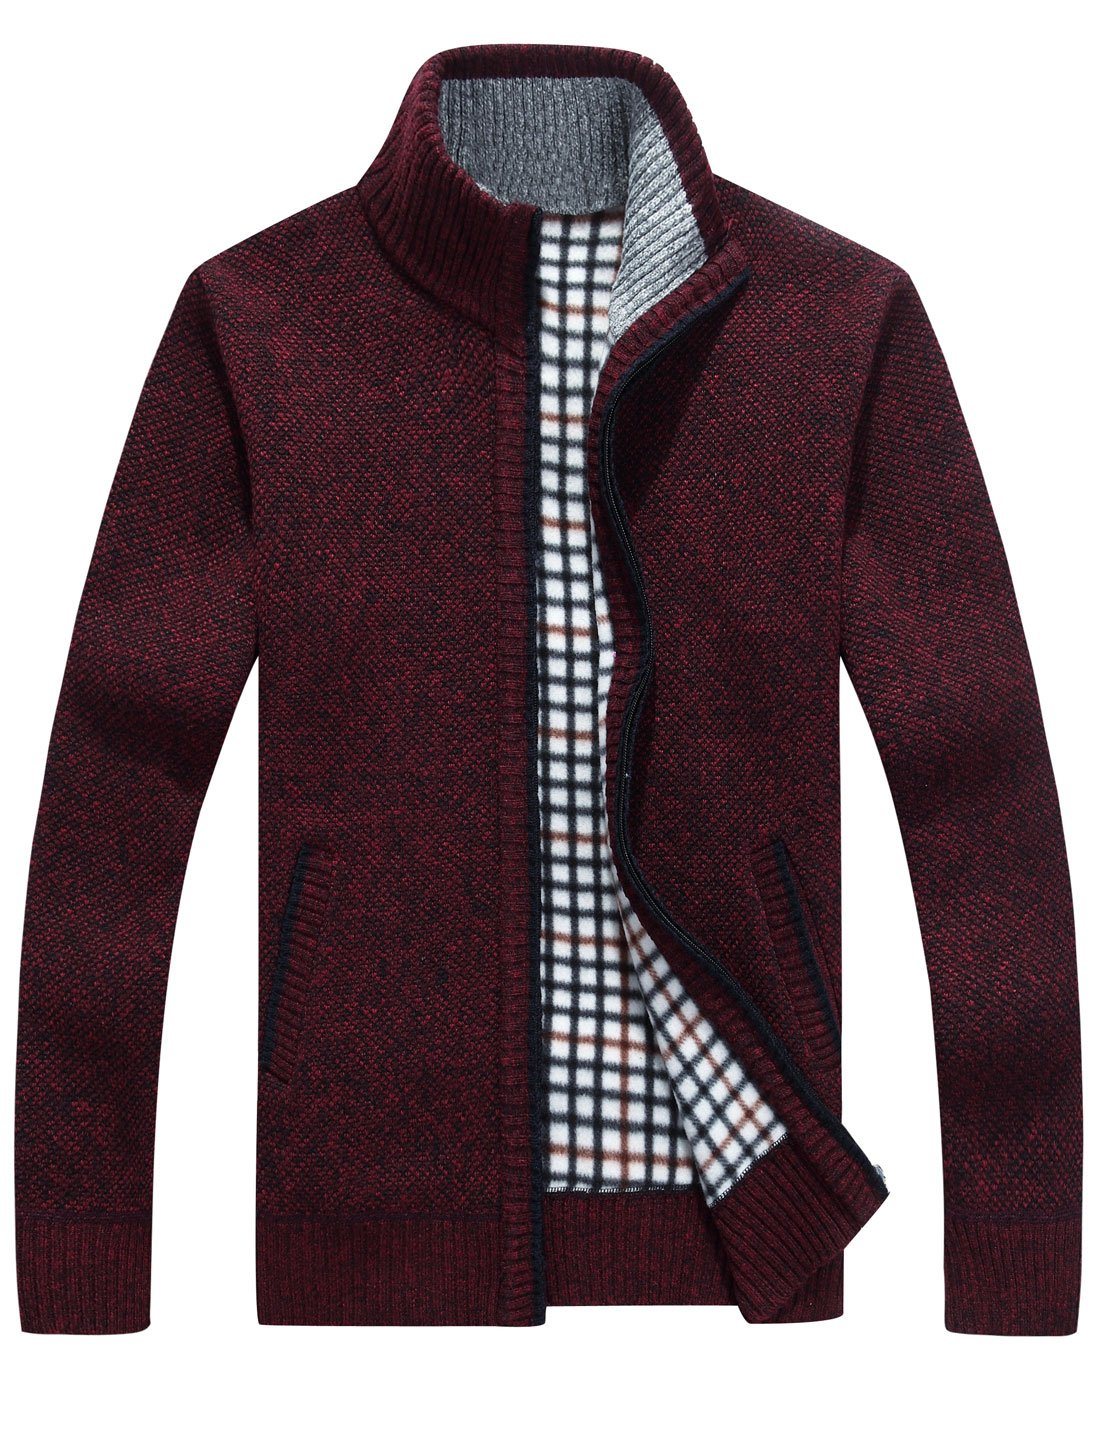 Yeokou Men's Slim Fit Zip up Casual Knitted Cardigan Sweaters with Pockets (Small, Wine Red) by Yeokou